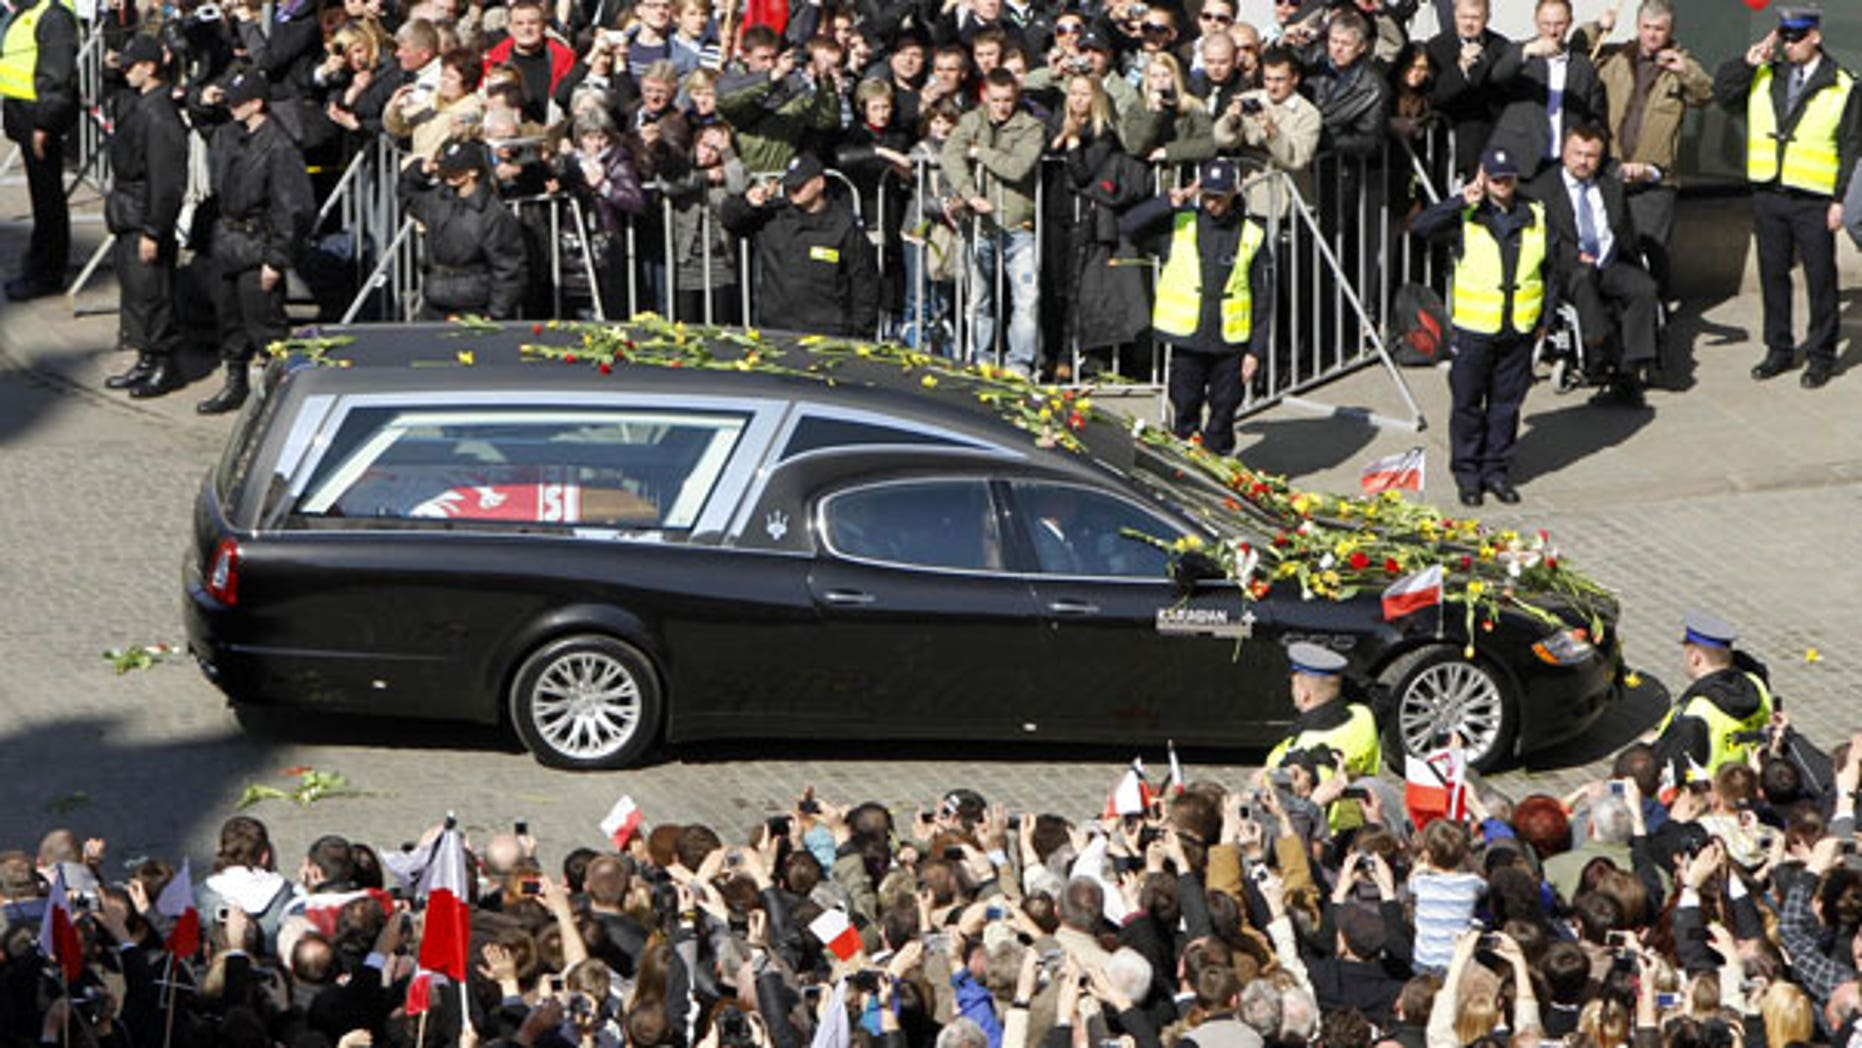 April 18: People stand along a street as a hearse carrying the coffin of the late Polish President Lech Kaczynski arrives in Krakaow, southern Poland. (AP)